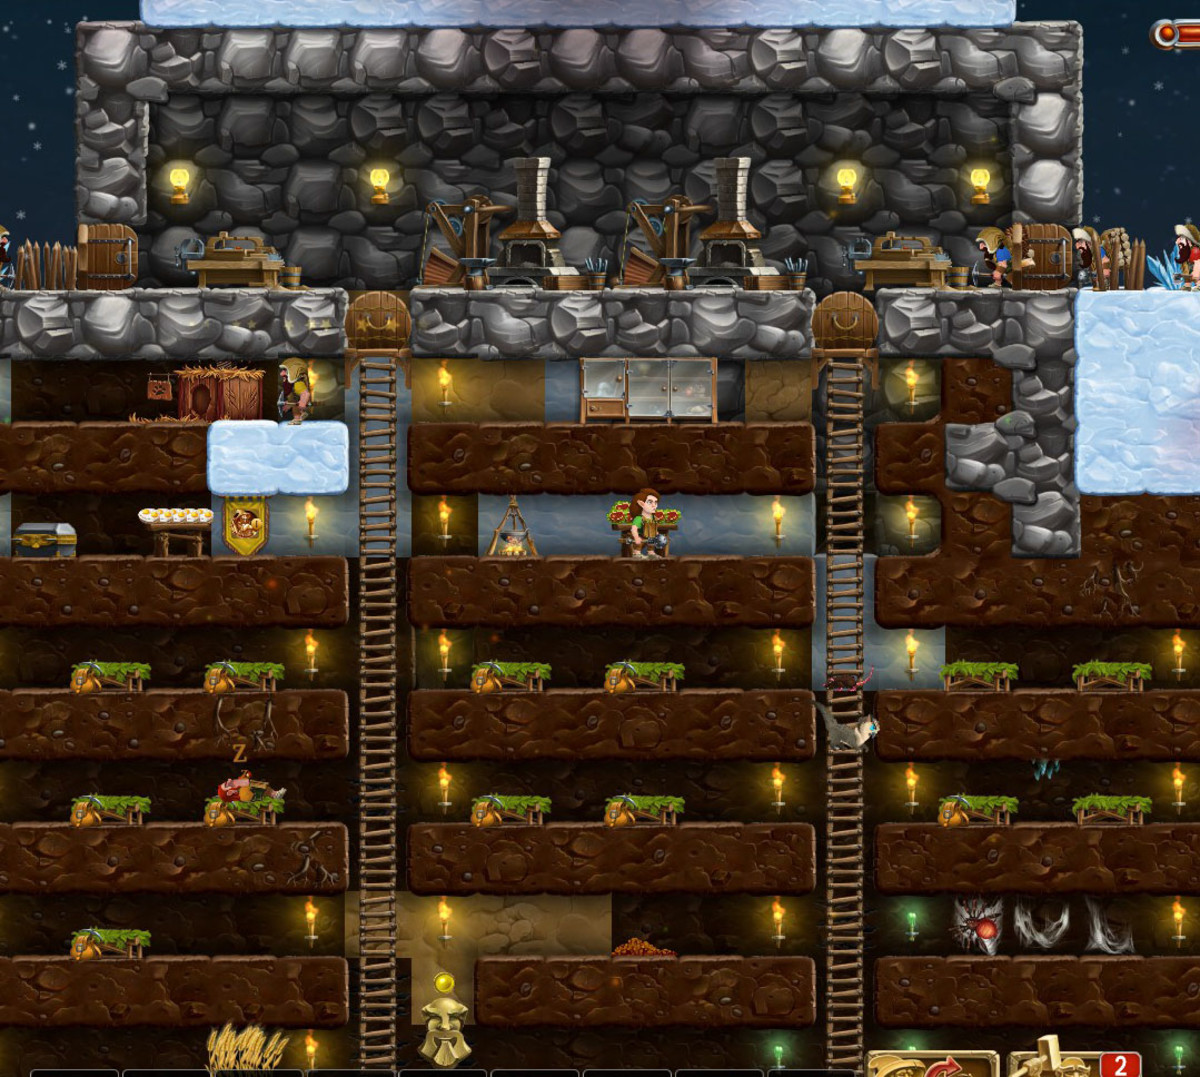 ...and here's an example of a rudimentary shelter I built in the second world.  As you can see, the dwarves live below ground (notice the totem at the bottom of the screen) and craft above ground, for quick/easy access back to the stockpile.